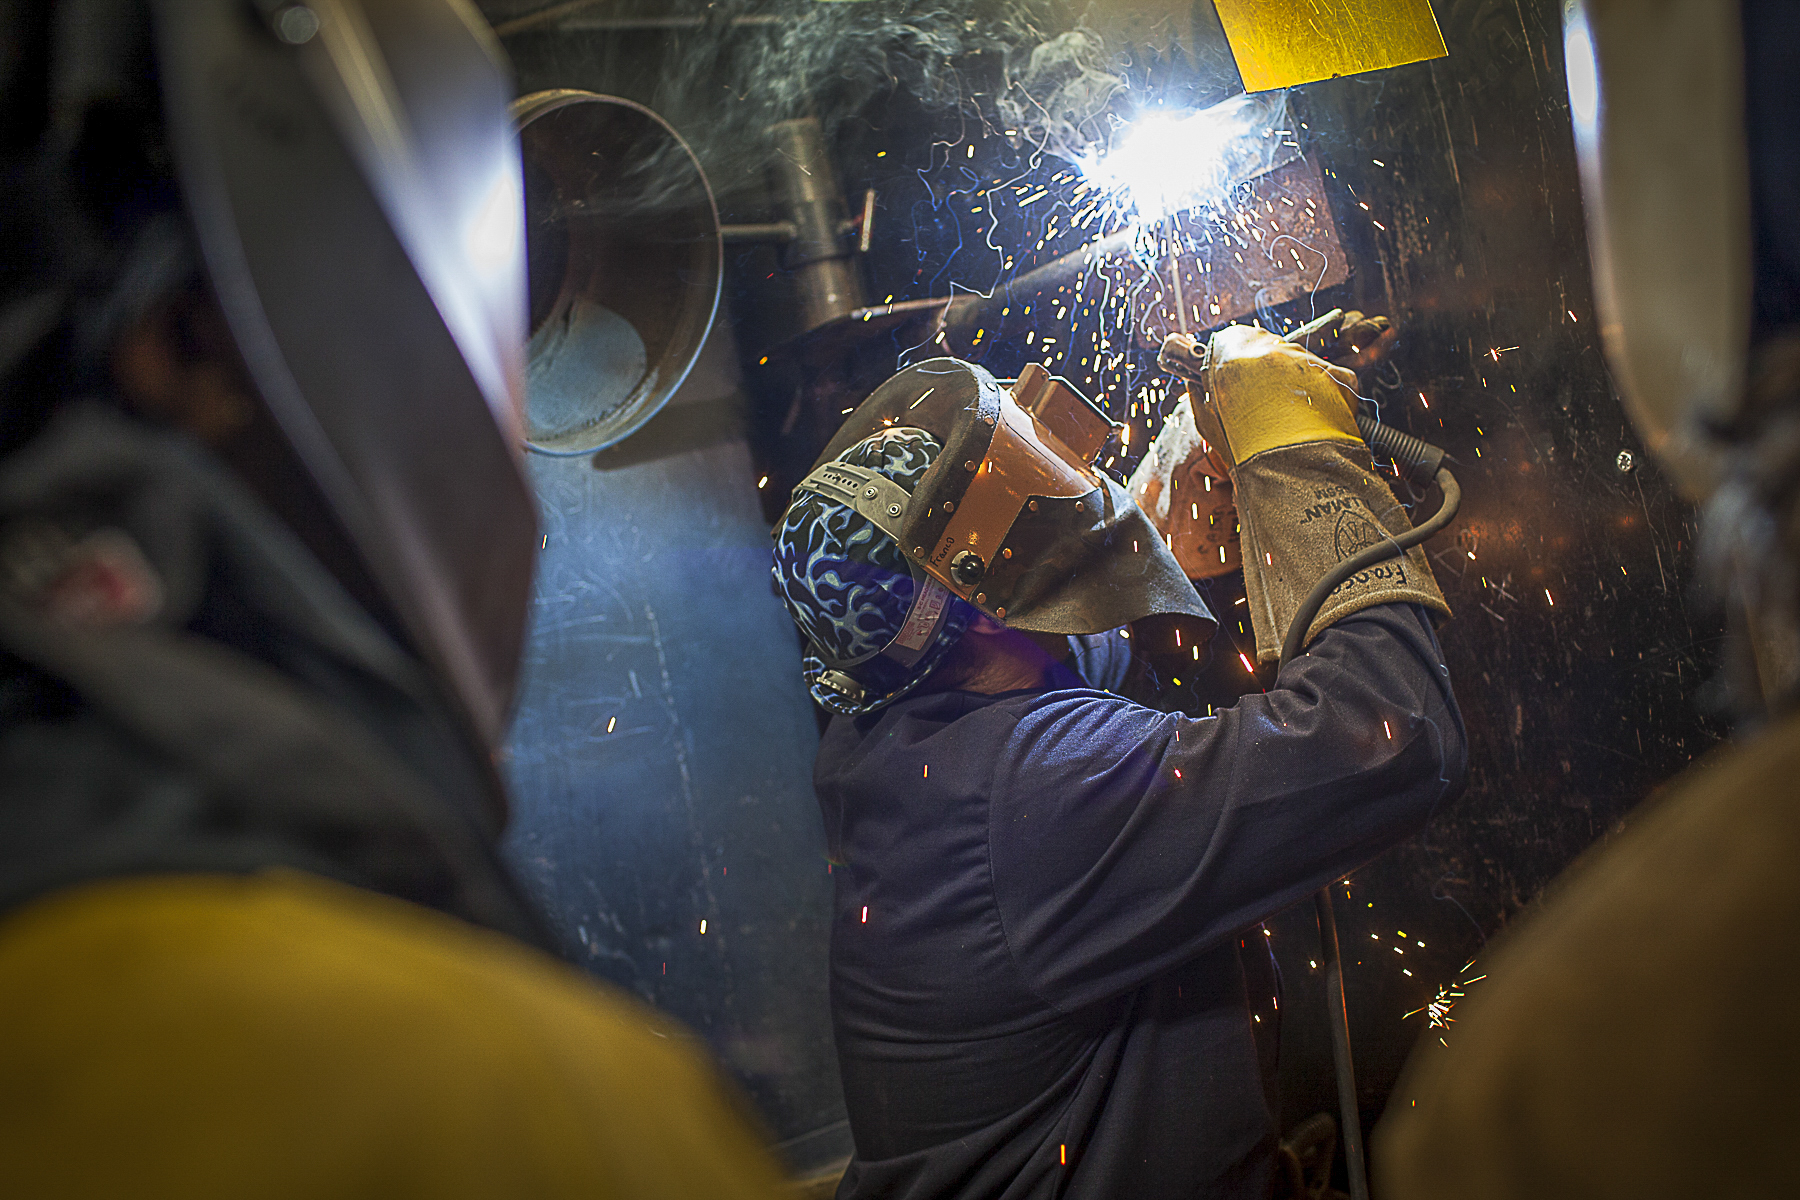 A SOLID STRUCTURE WCJC's Welding Technology Program prepares graduates for workforce